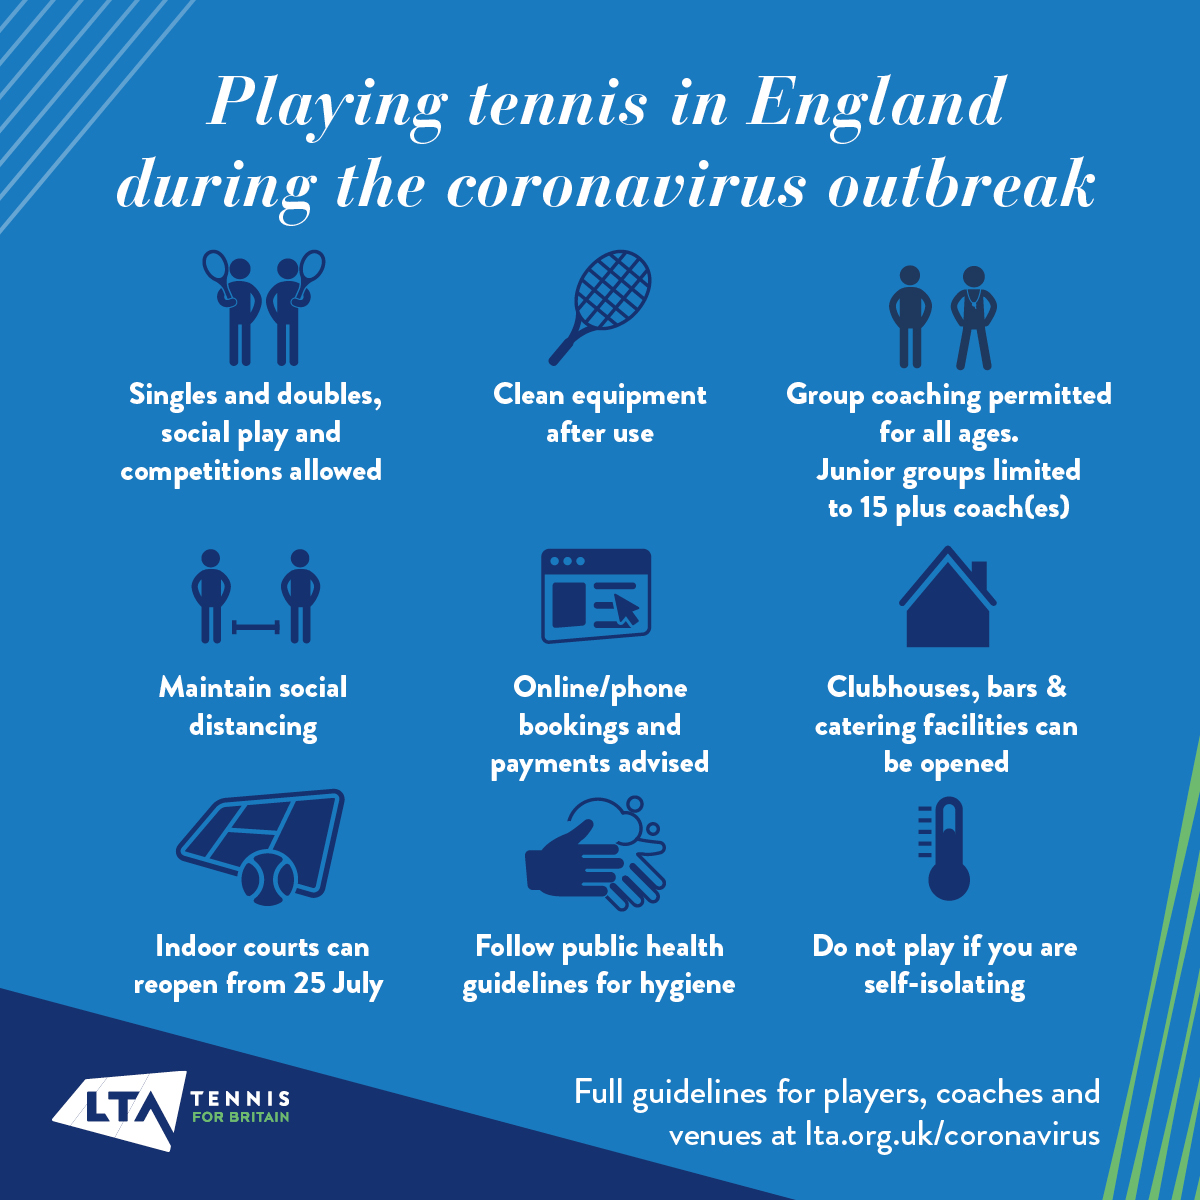 https://live-lta.fastcdn.co.uk/globalassets/news/2020/lta-infographic---playing-tennis-in-england-during-coronavirus-outbreak.jpg?version=805662fd